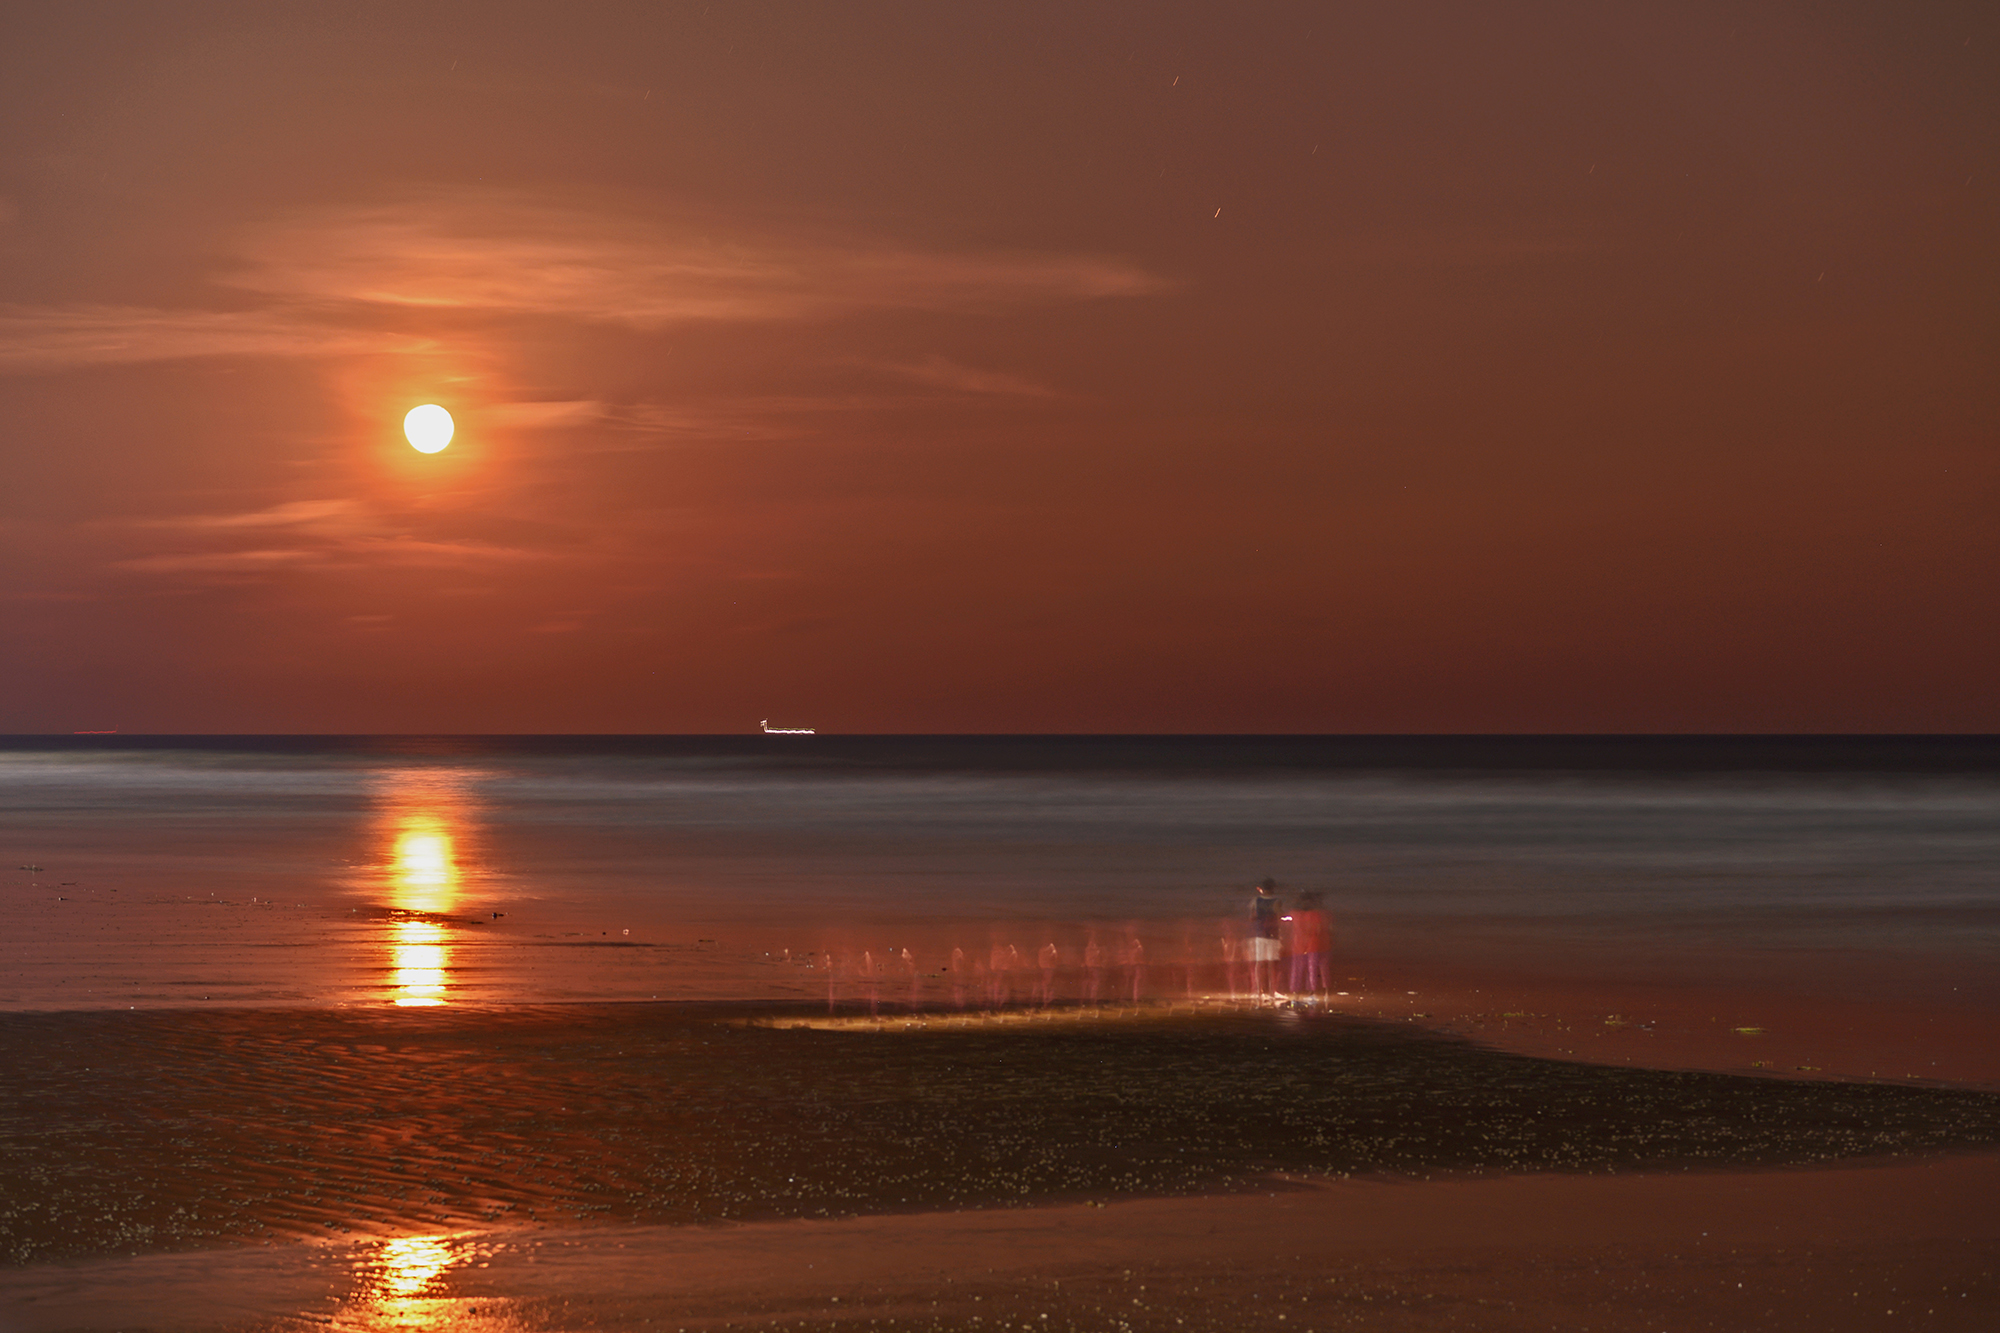 I wonder if the sea is violent every day or it is also under the spell of the full moon that is supposed to turn on a bit of madness in all of us... and i clicked this photo a day after full moon. Its really beautifull moment.